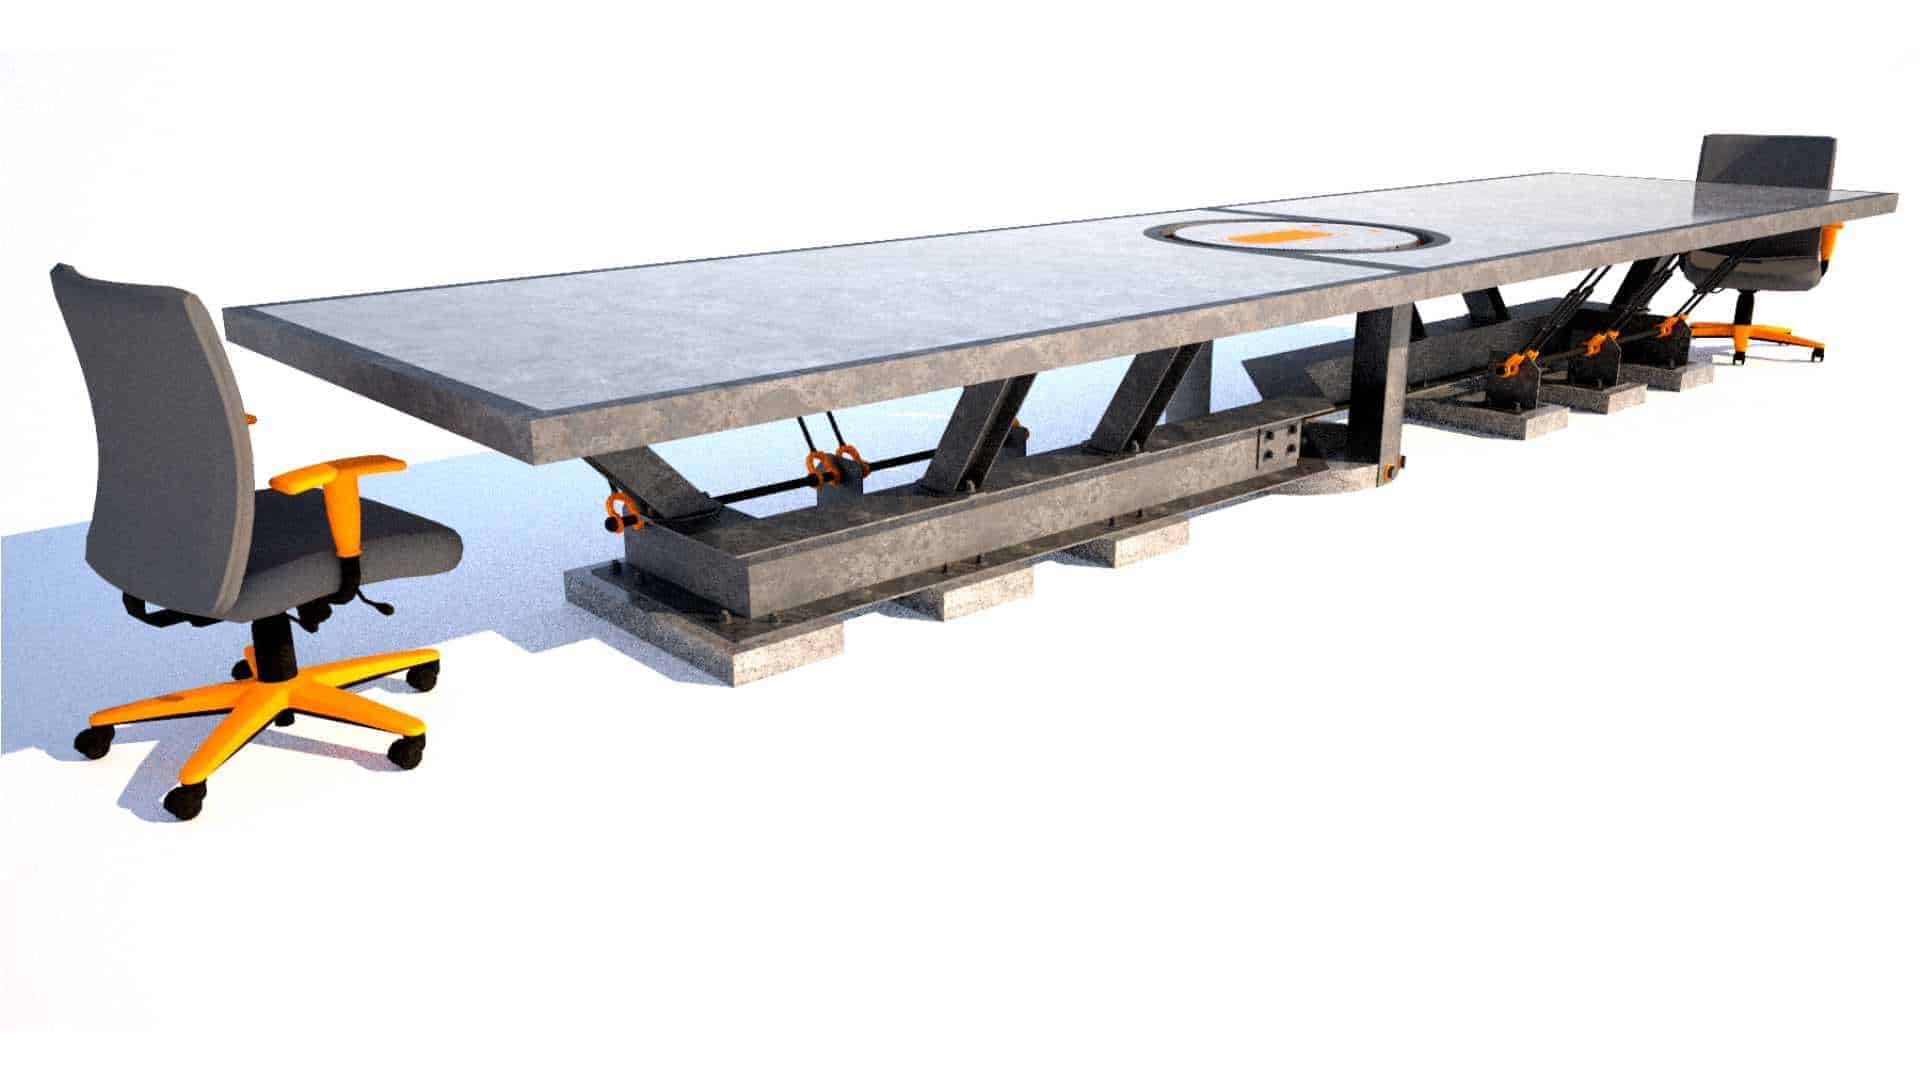 Steel and concrete conference room table, Designs by Rudy, thumbnail